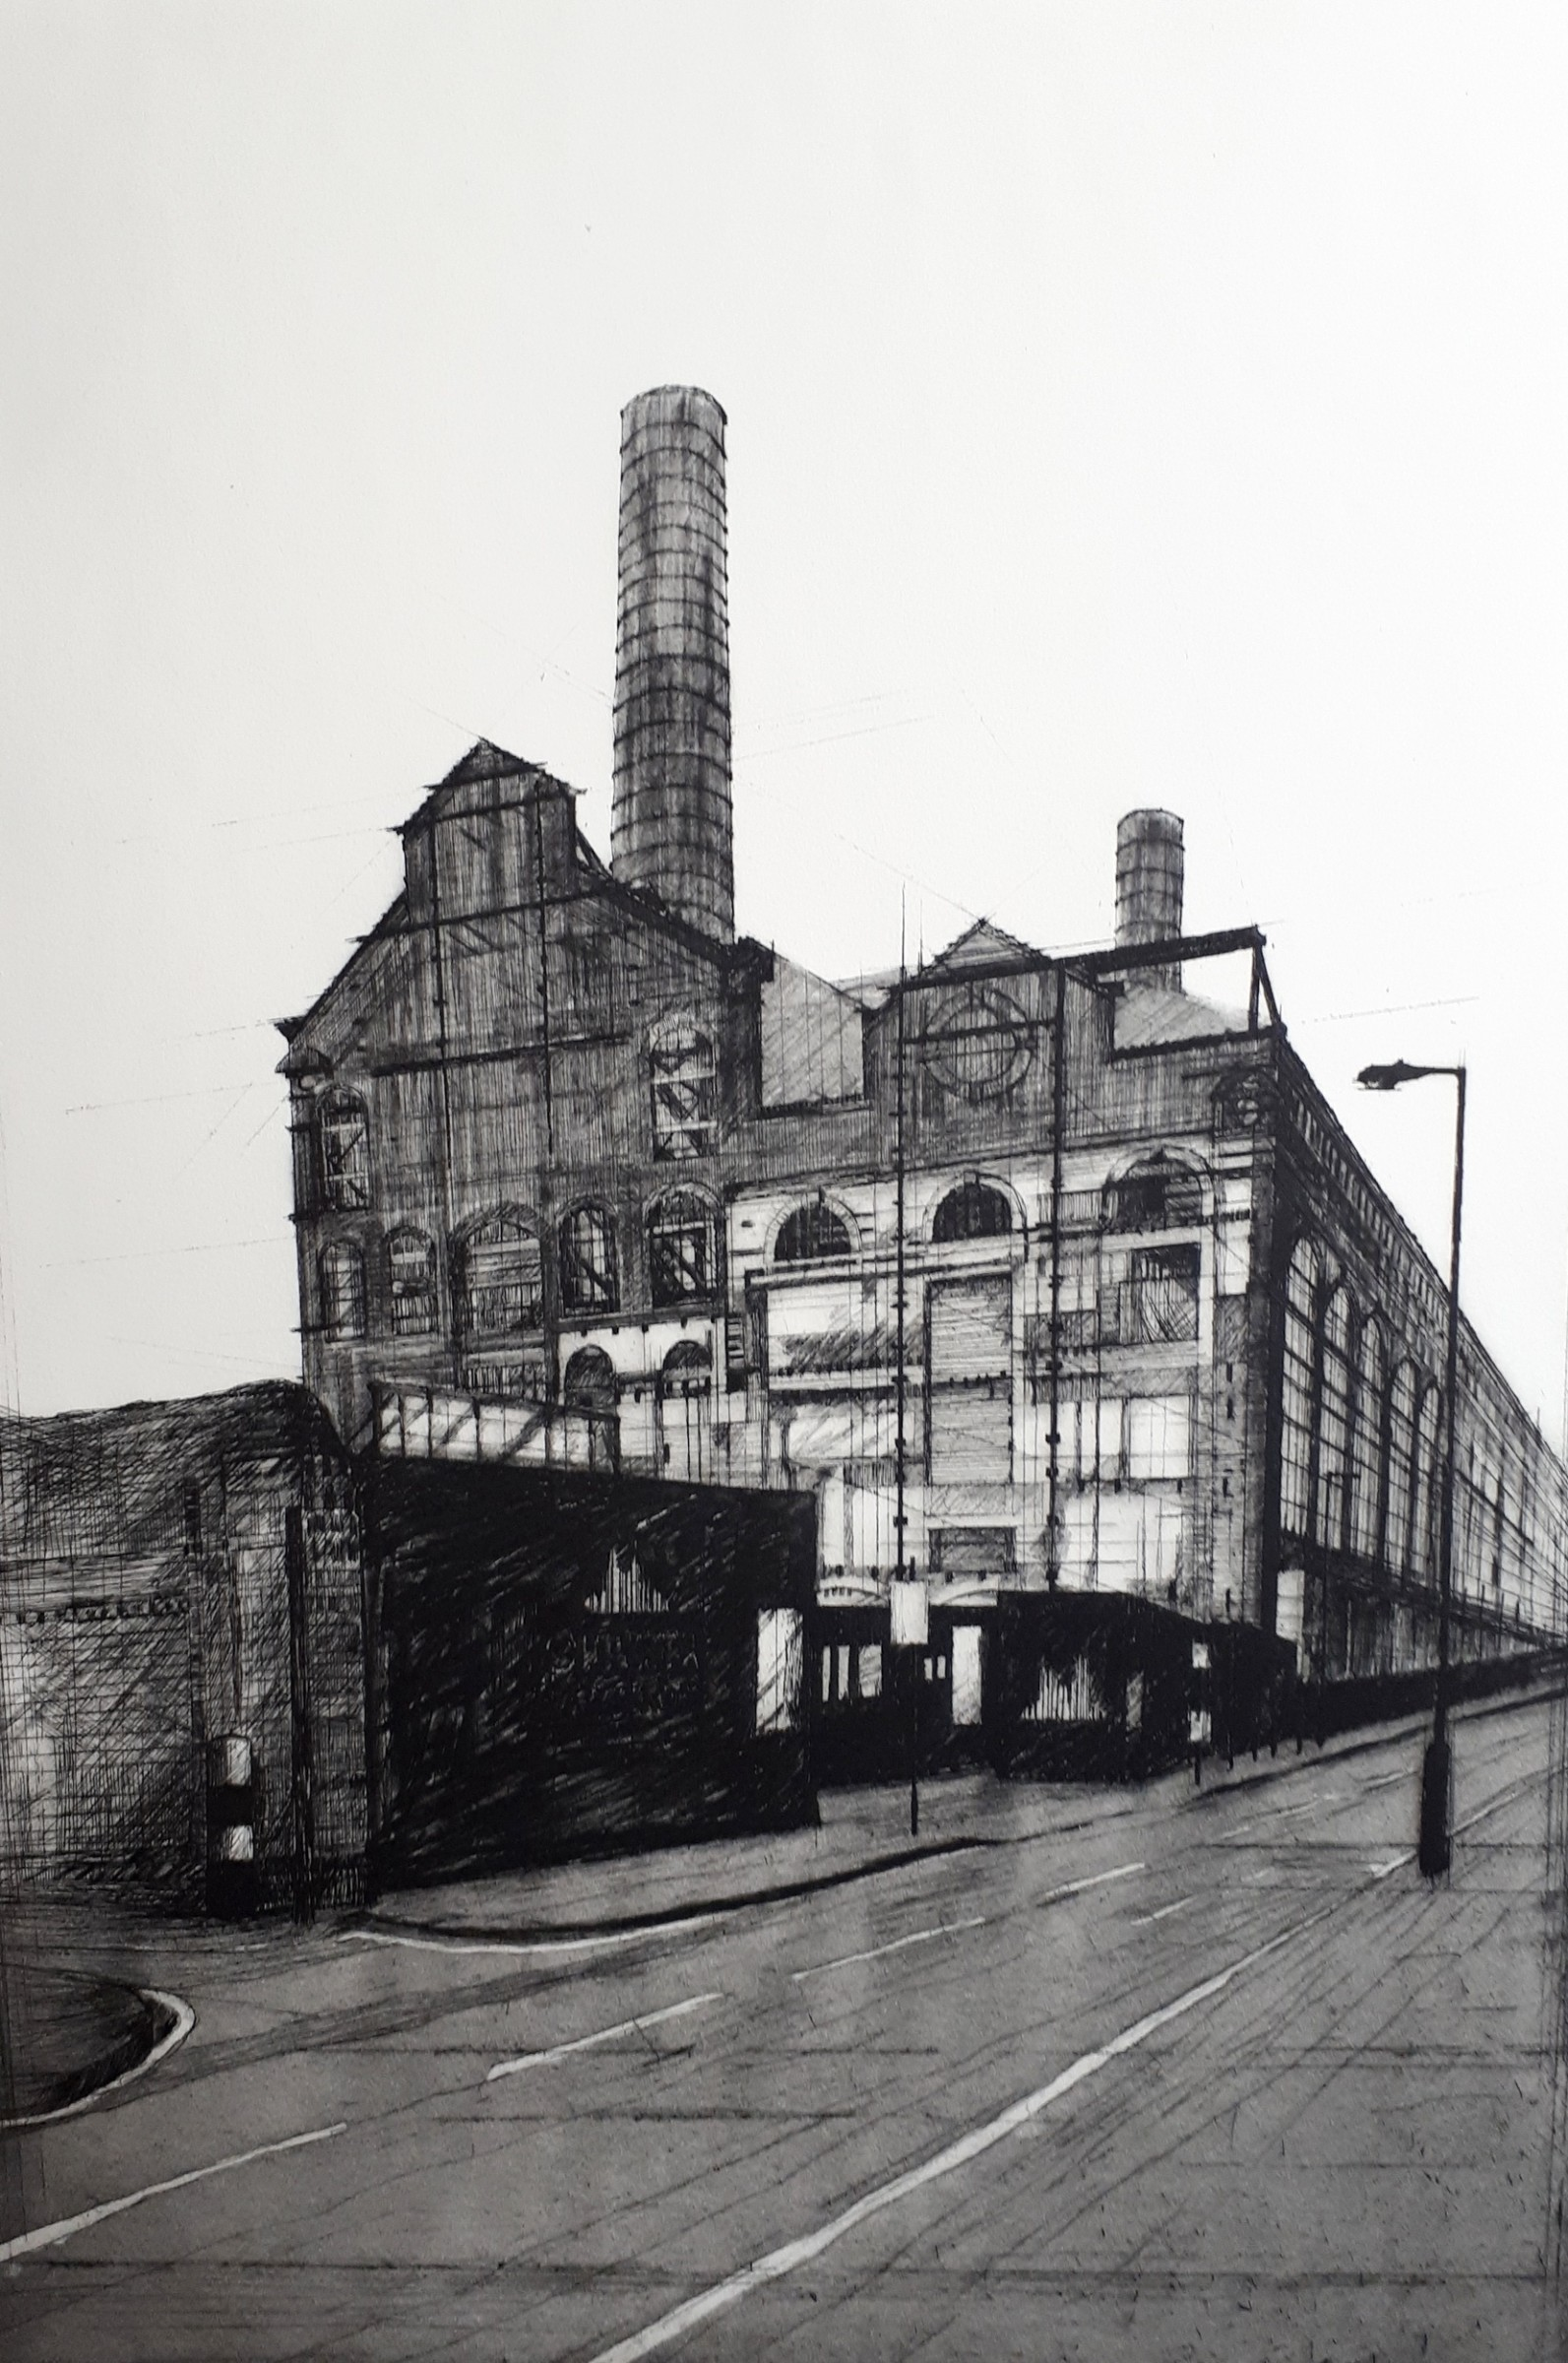 "<span class=""link fancybox-details-link""><a href=""/exhibitions/12/works/image_standalone186/"">View Detail Page</a></span><h2>Melanie Bellis</h2><p>Lots Road Power Station</p>"